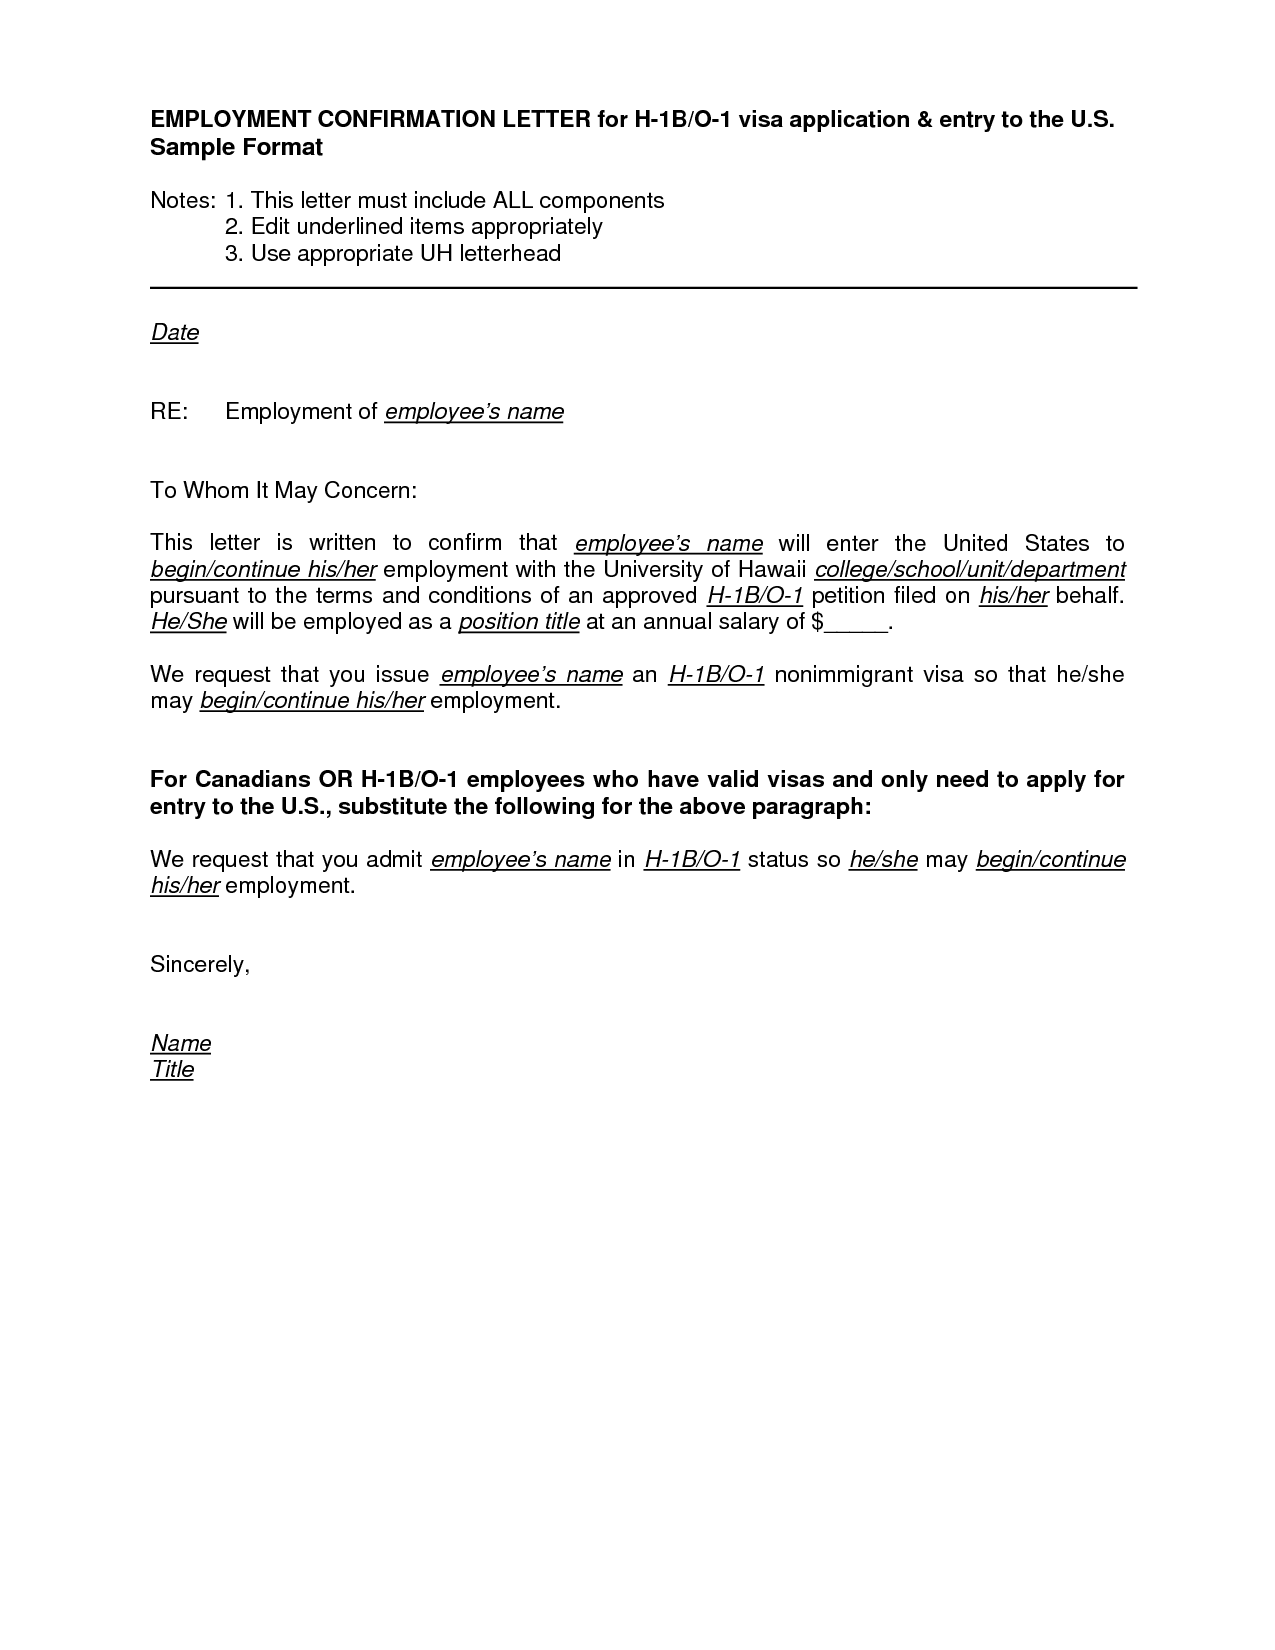 Employment Letter Visa Application Sample Employment